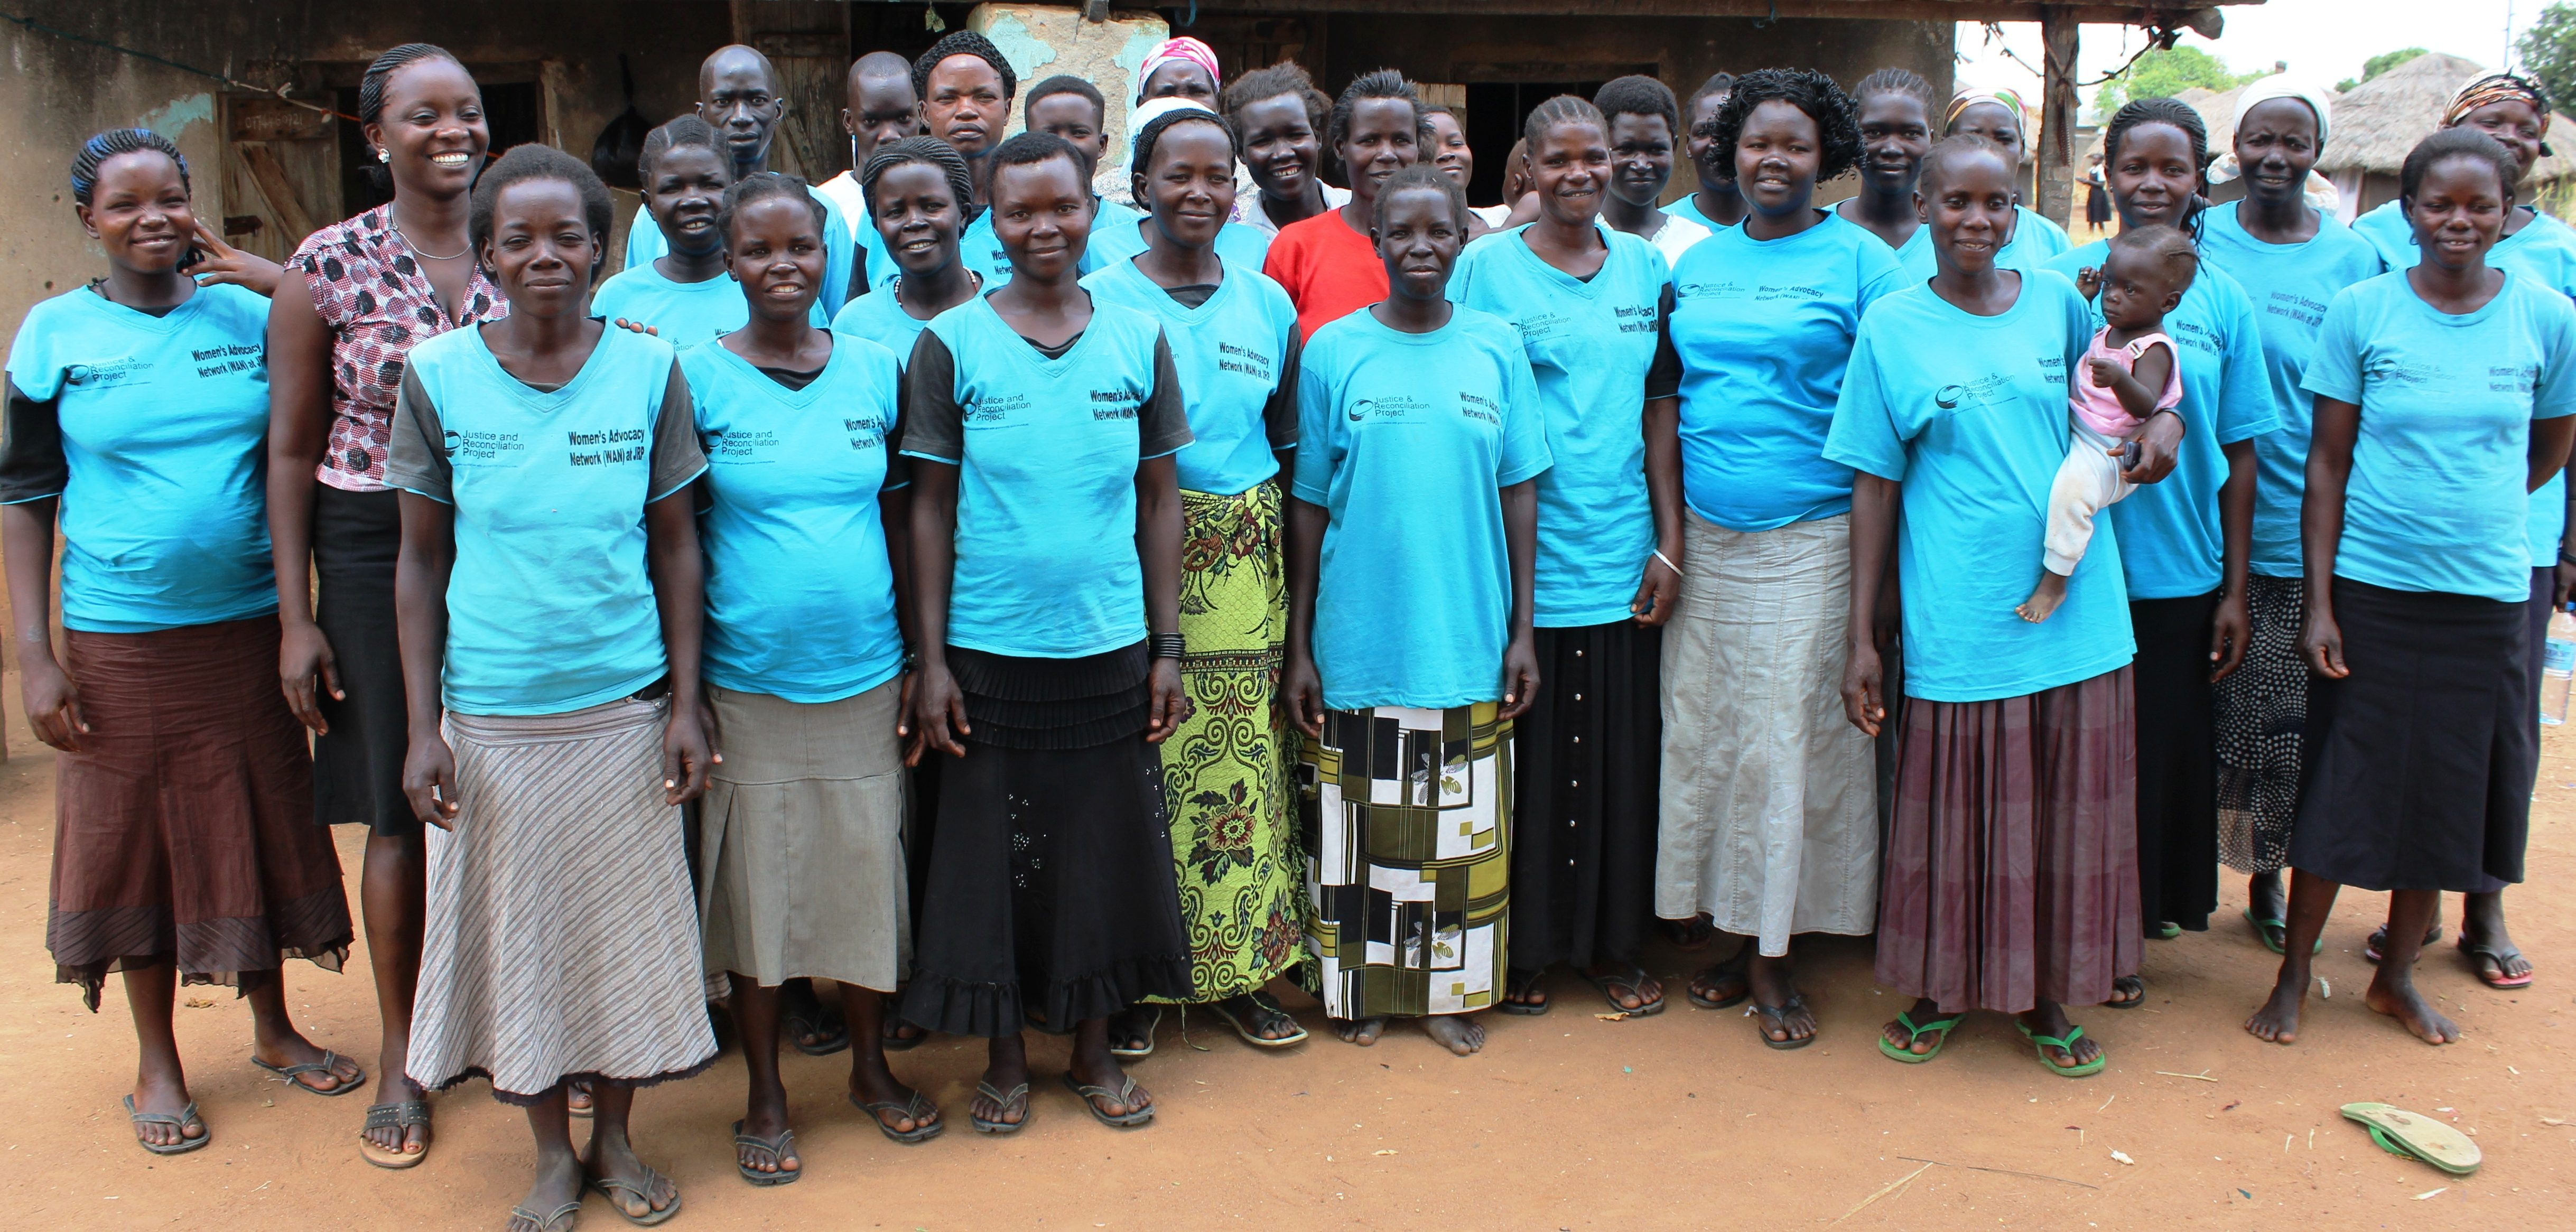 Some of the conflict-affected women including mothers of children born of war pose for a picture in Awach, Gulu district during JRP study.